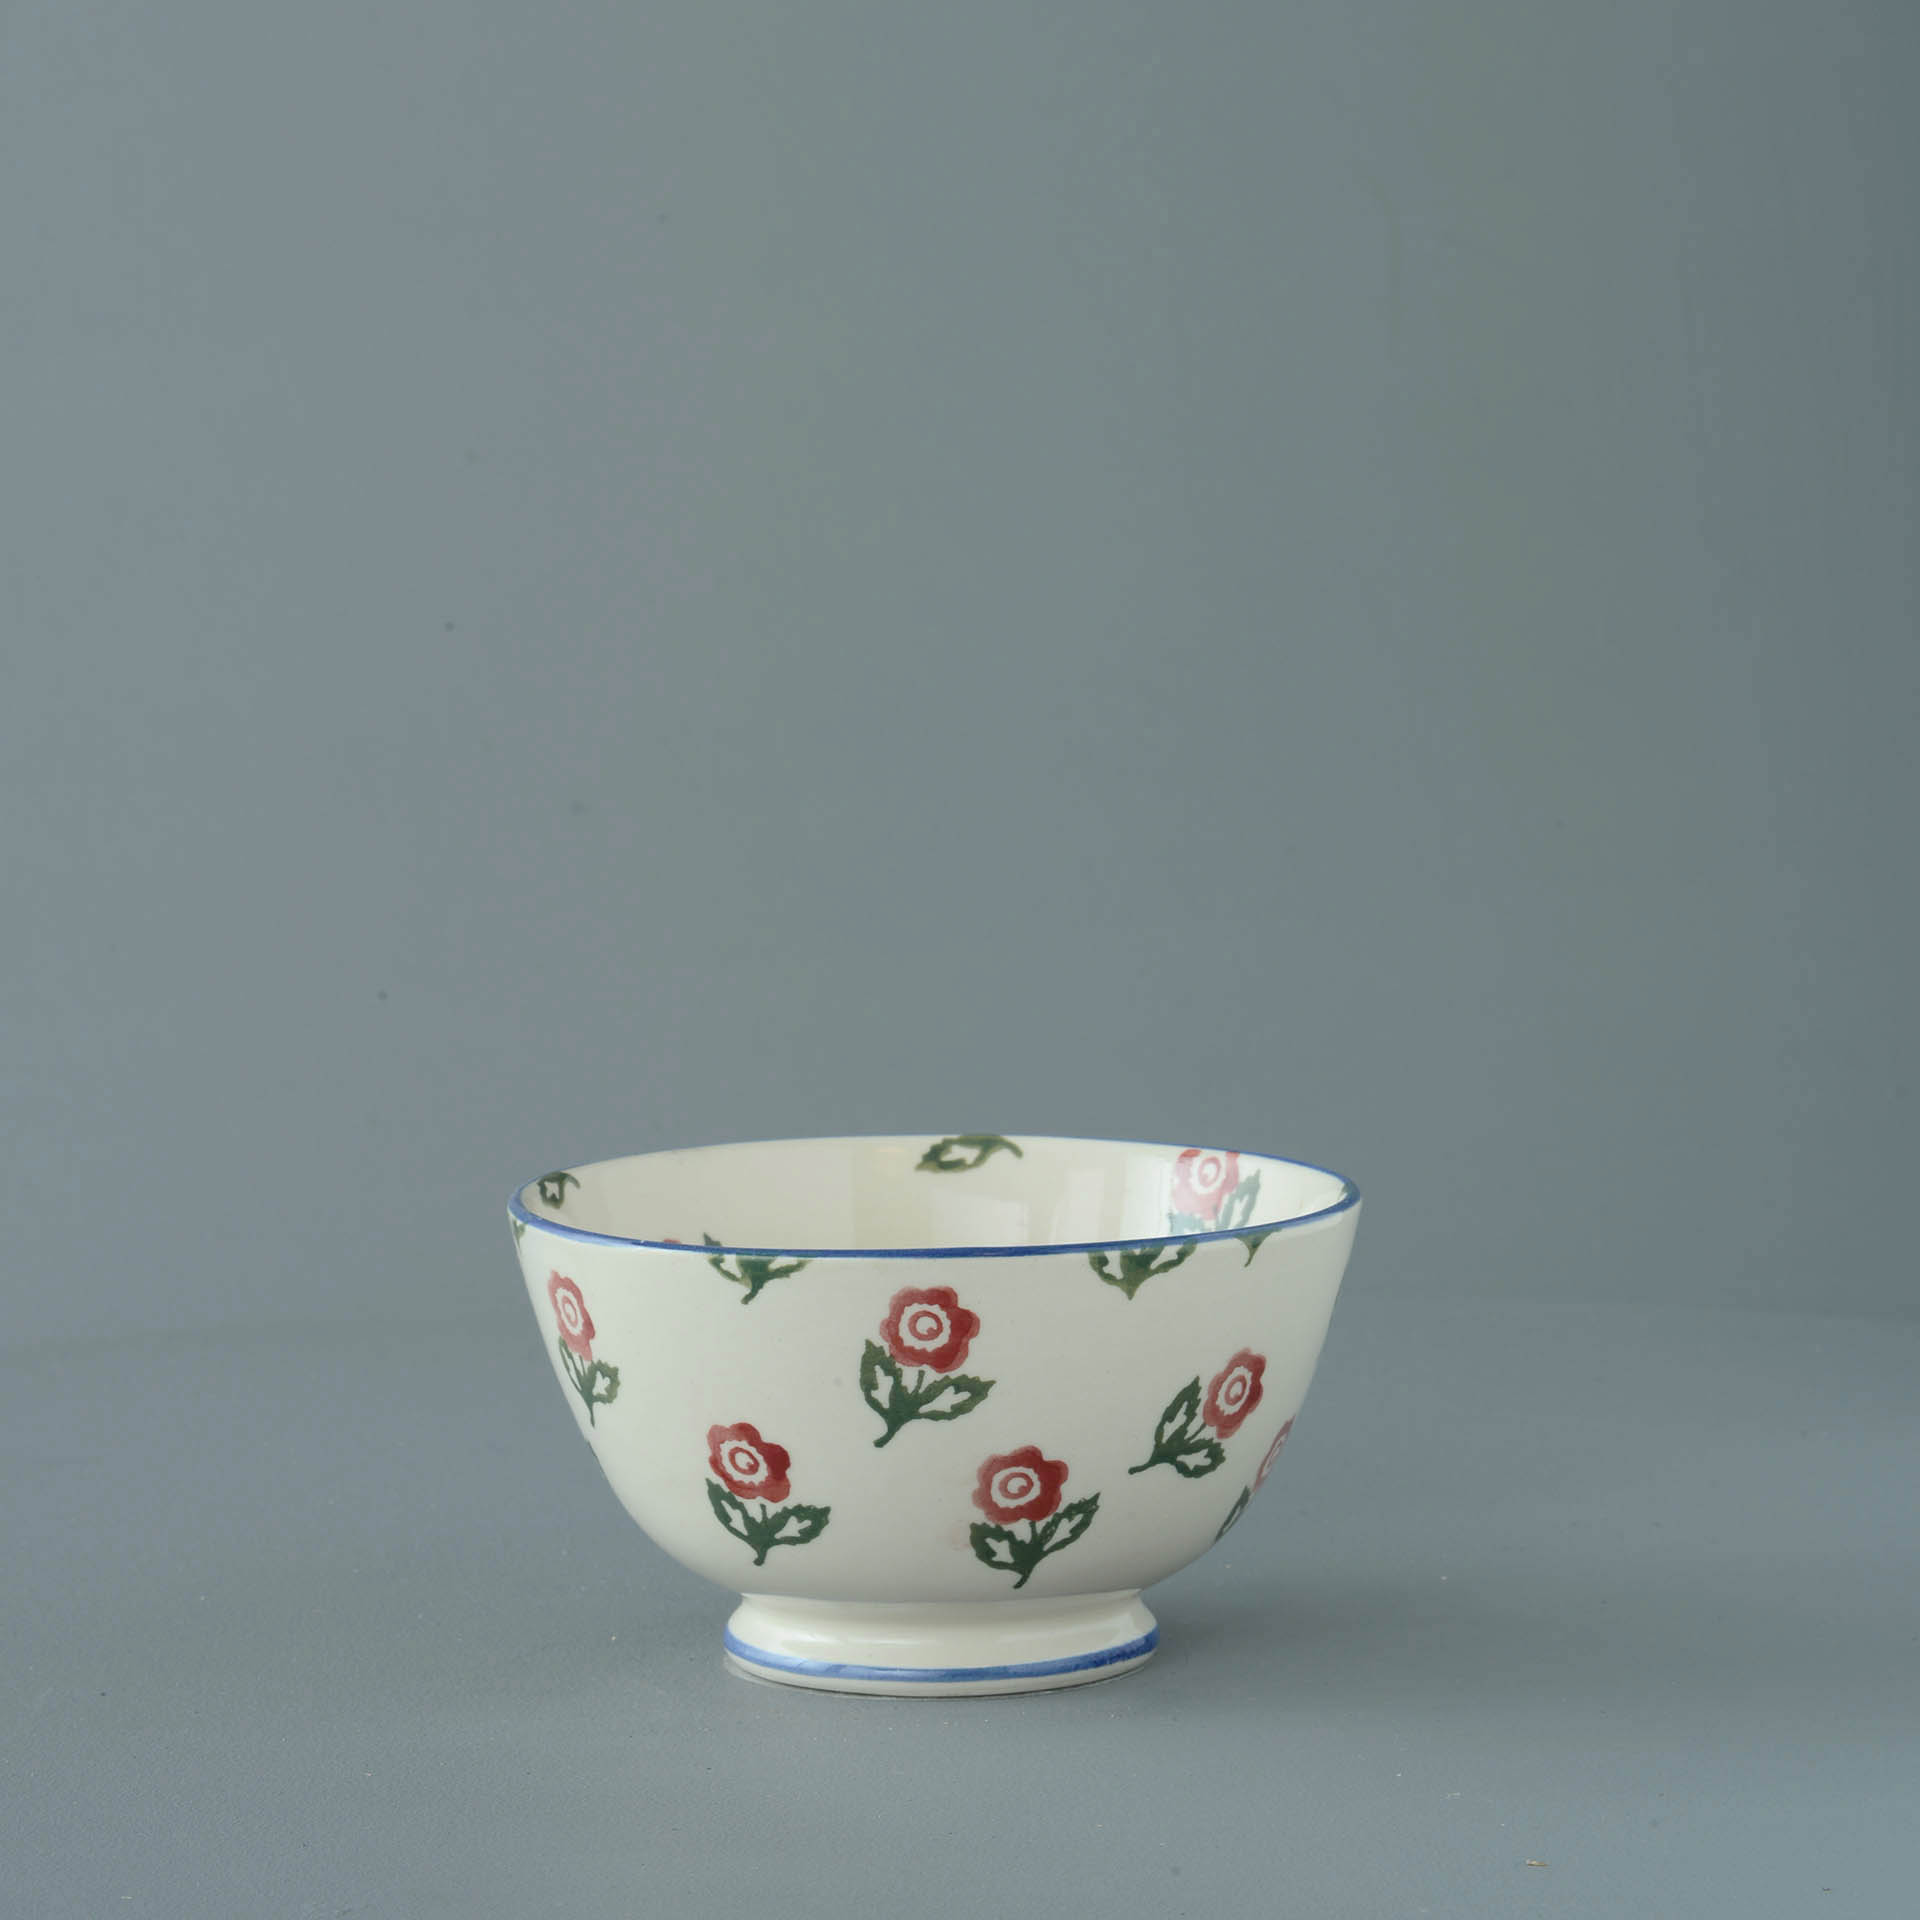 Scattered Rose Small Bowl 6.5 x 12 cm